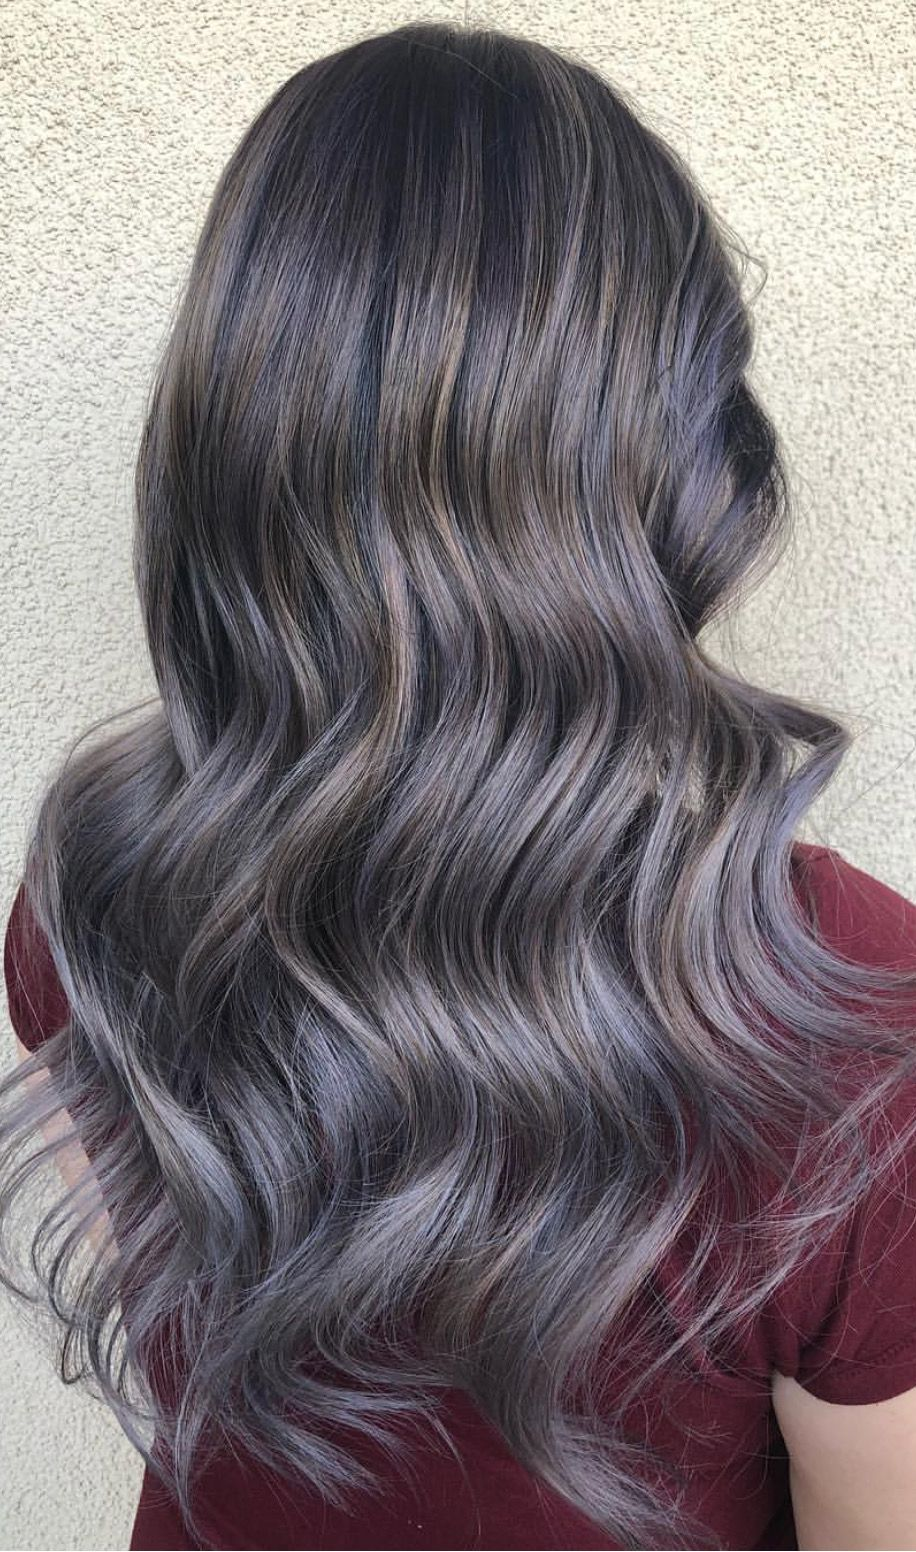 Pin By Diana Packer On Hair Pinterest Hair Coloring